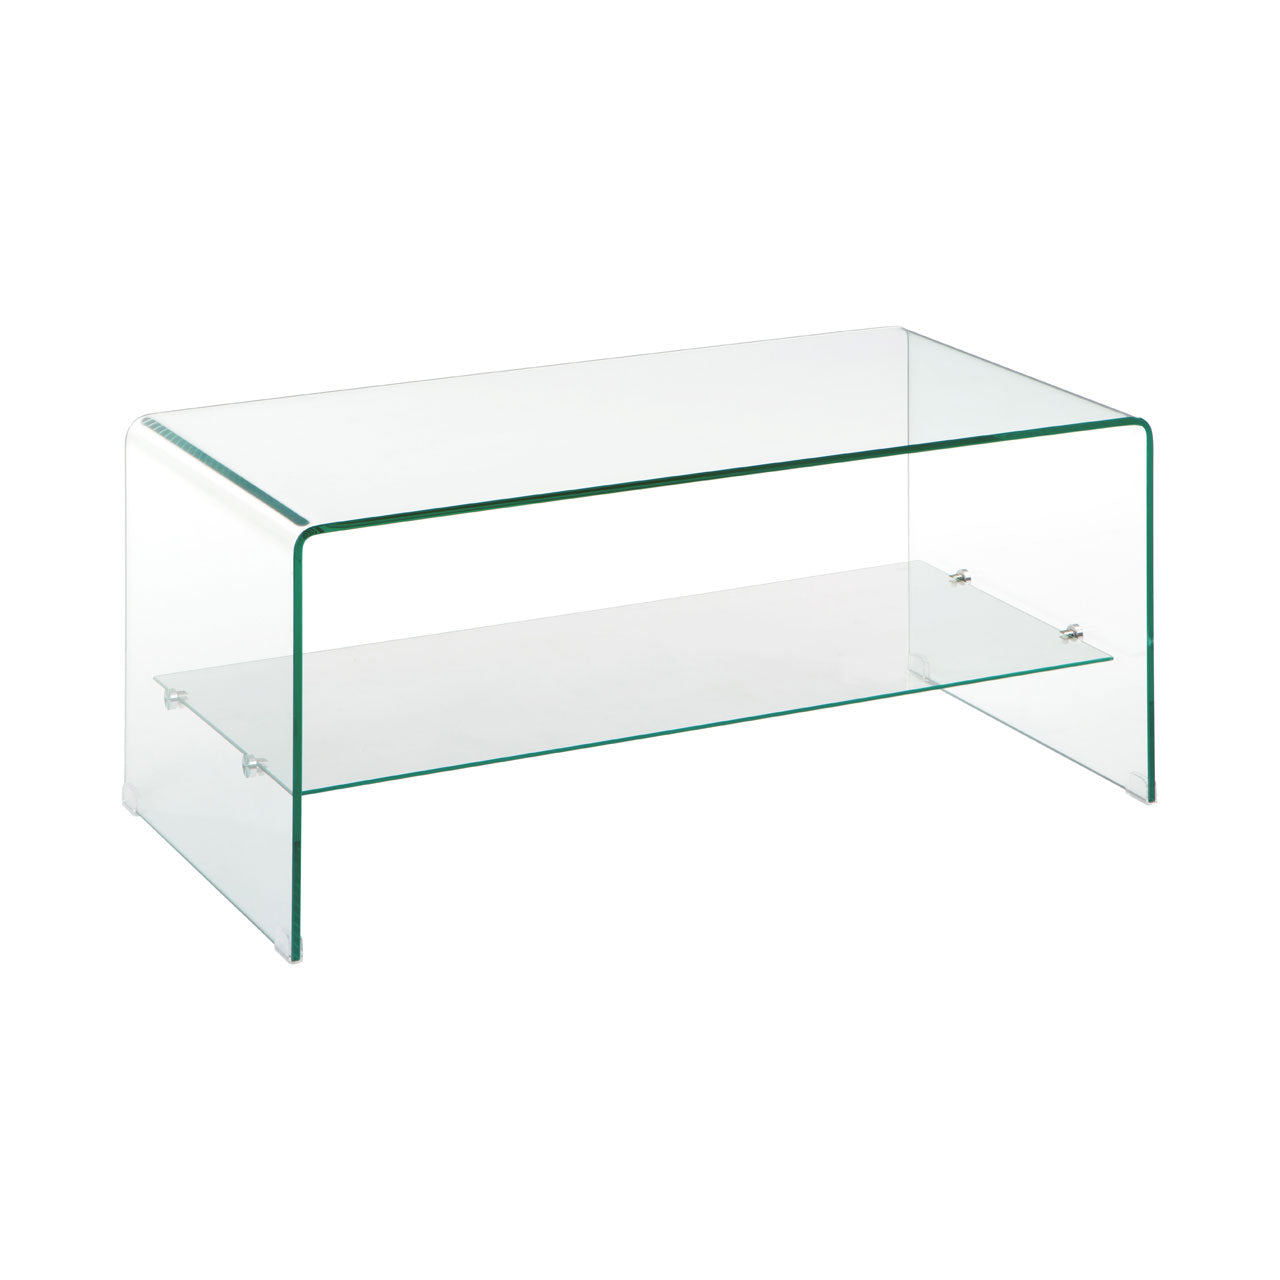 Matrix Coffee Table with Shelf